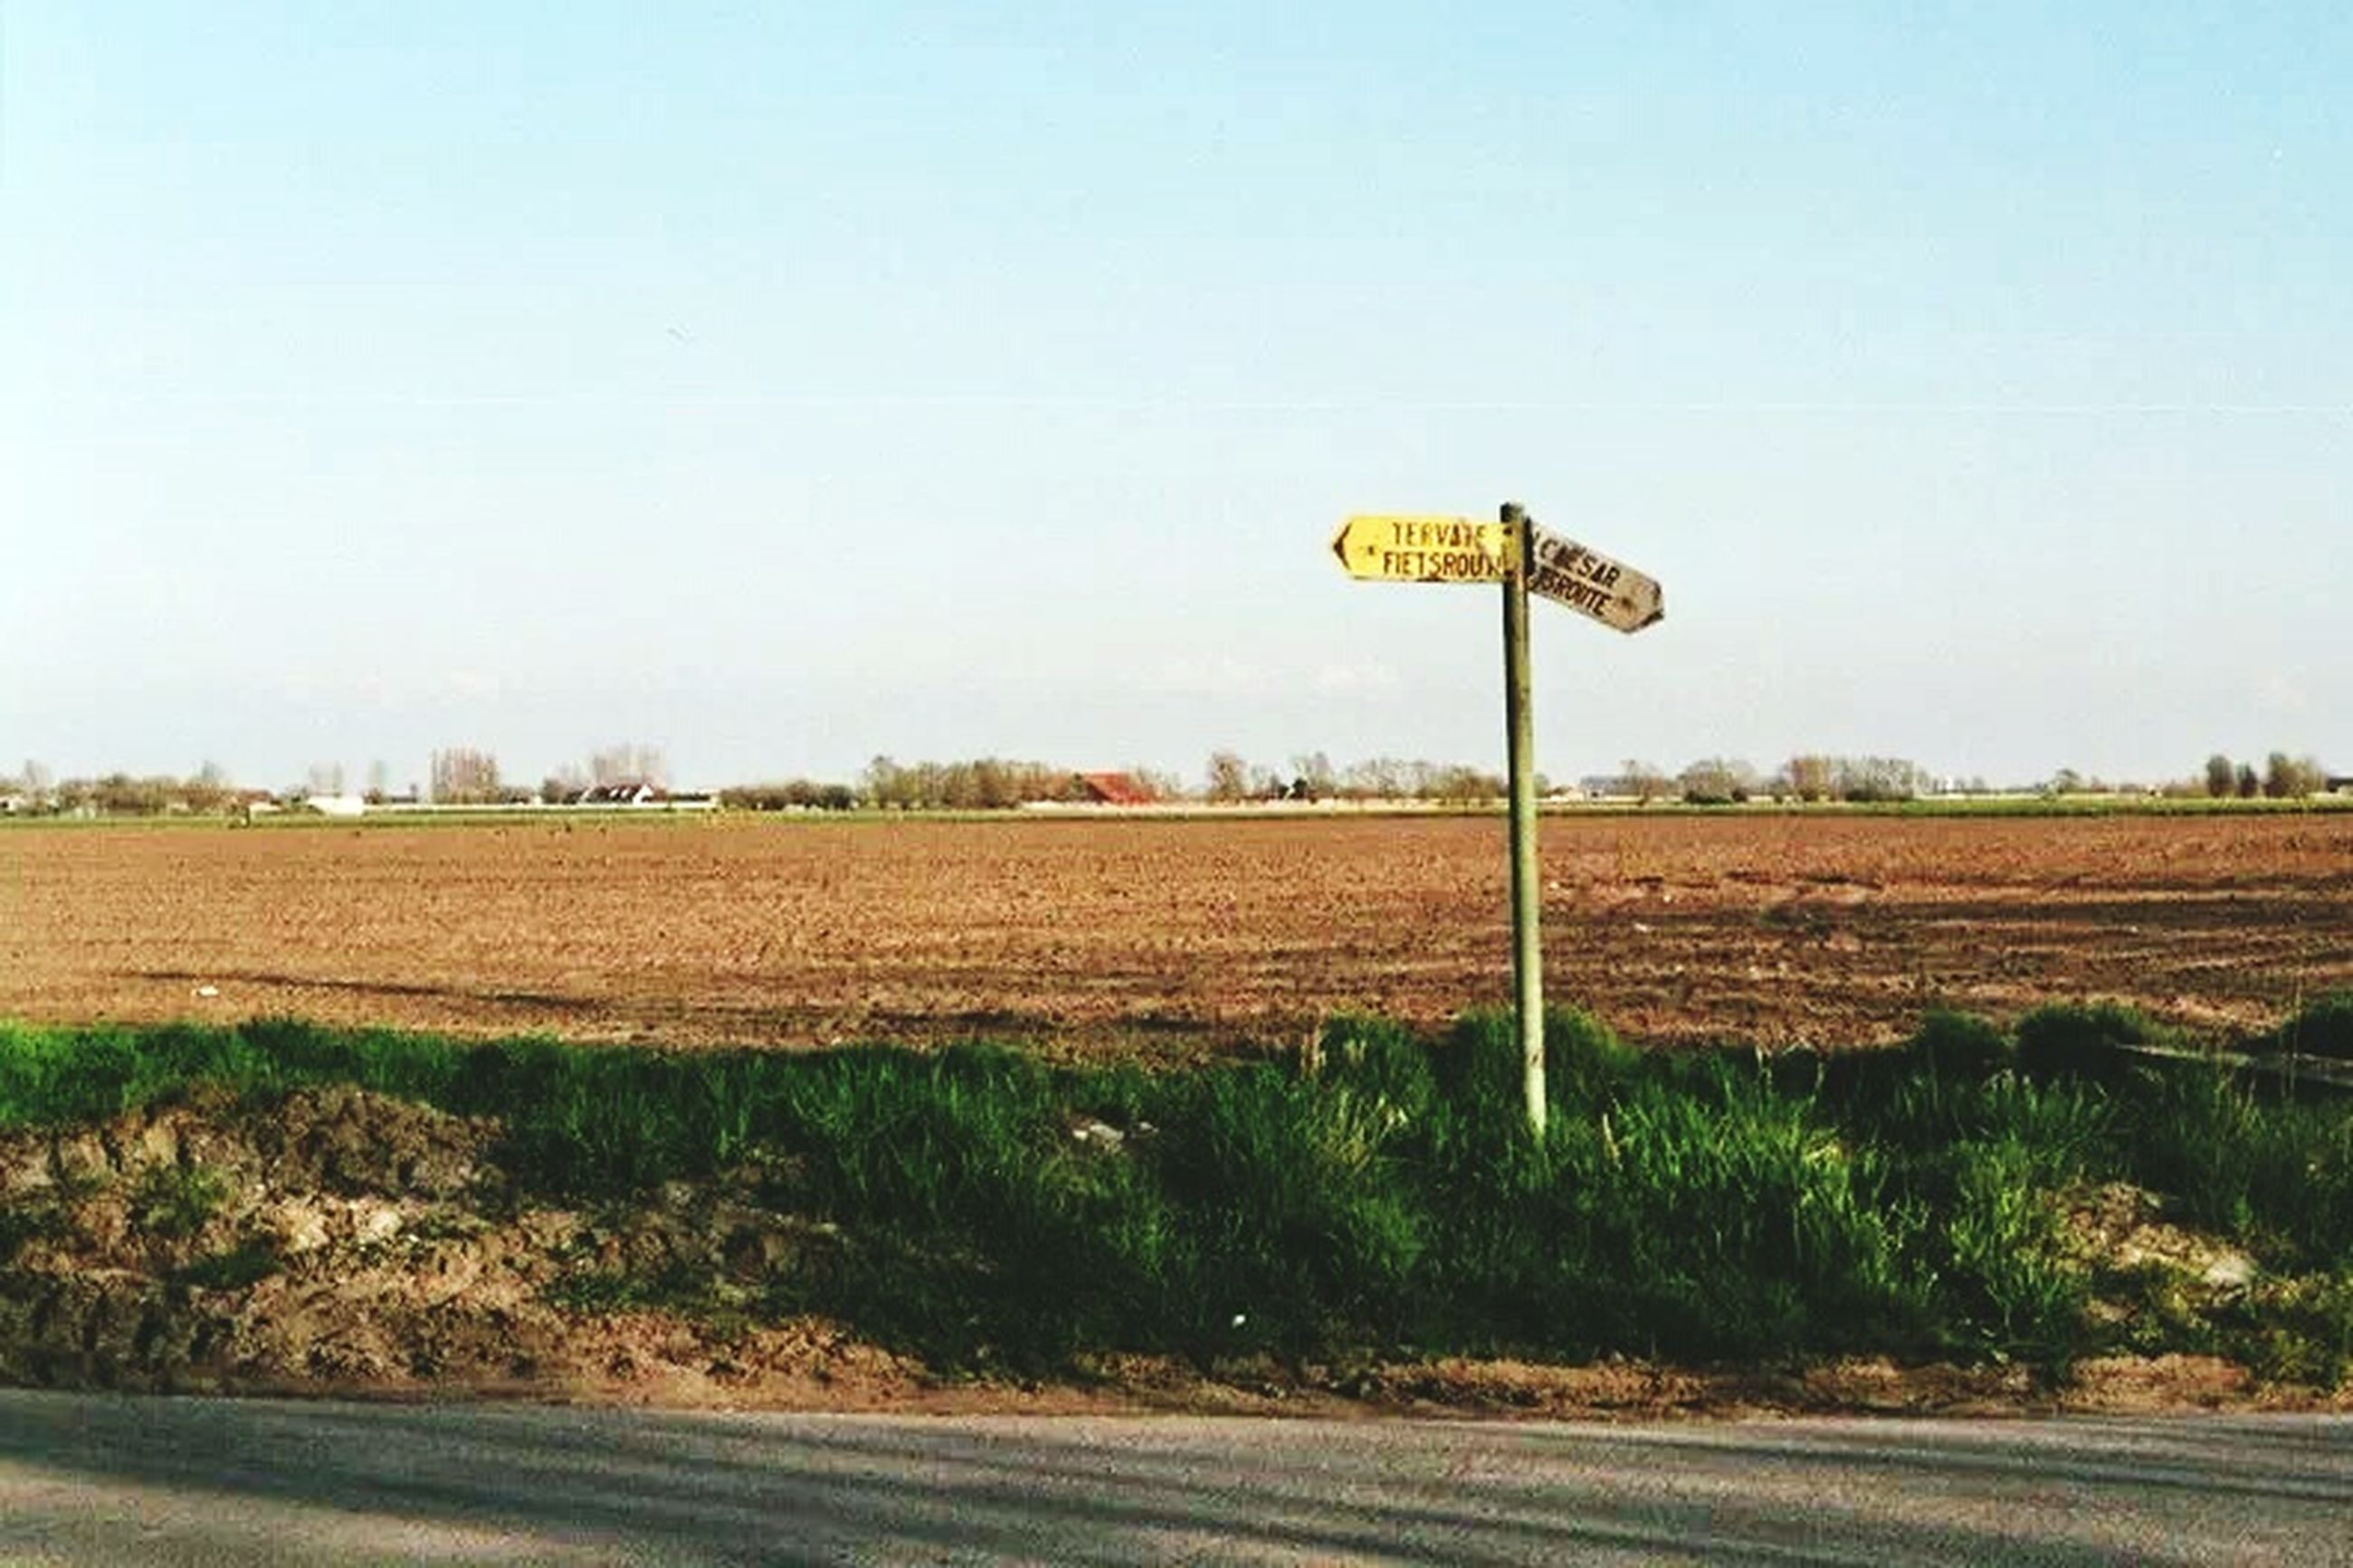 clear sky, copy space, field, landscape, communication, road sign, yellow, tranquility, road, tranquil scene, information sign, grass, text, nature, sky, sign, western script, guidance, day, tree